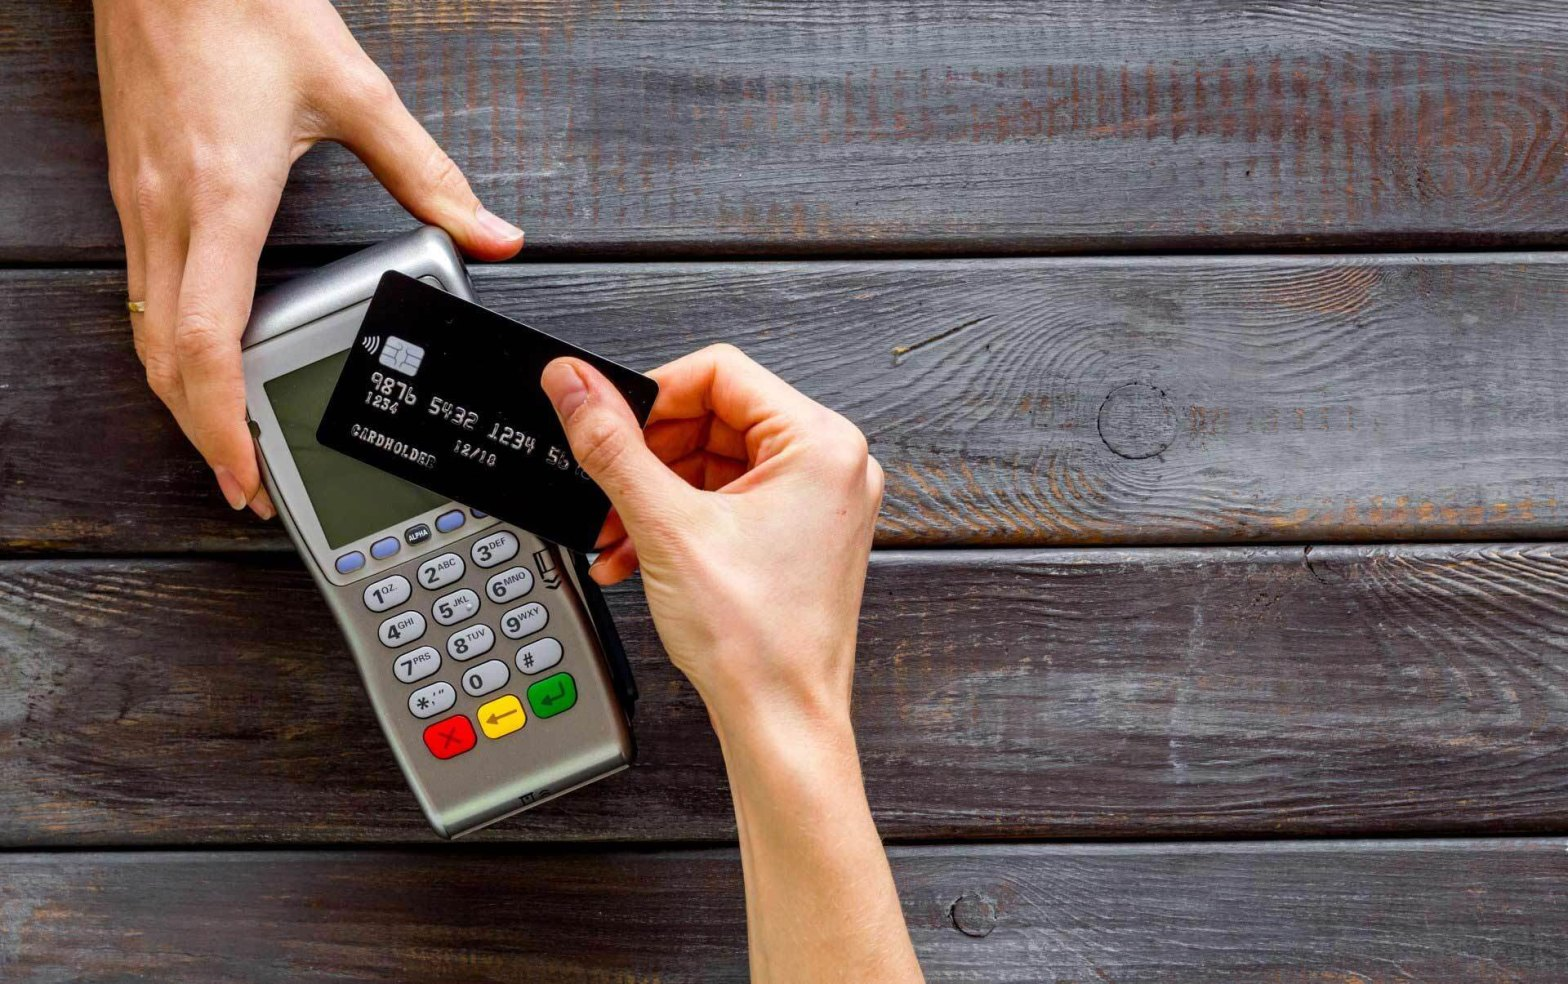 Two hand paying with a credit card and credit card reader